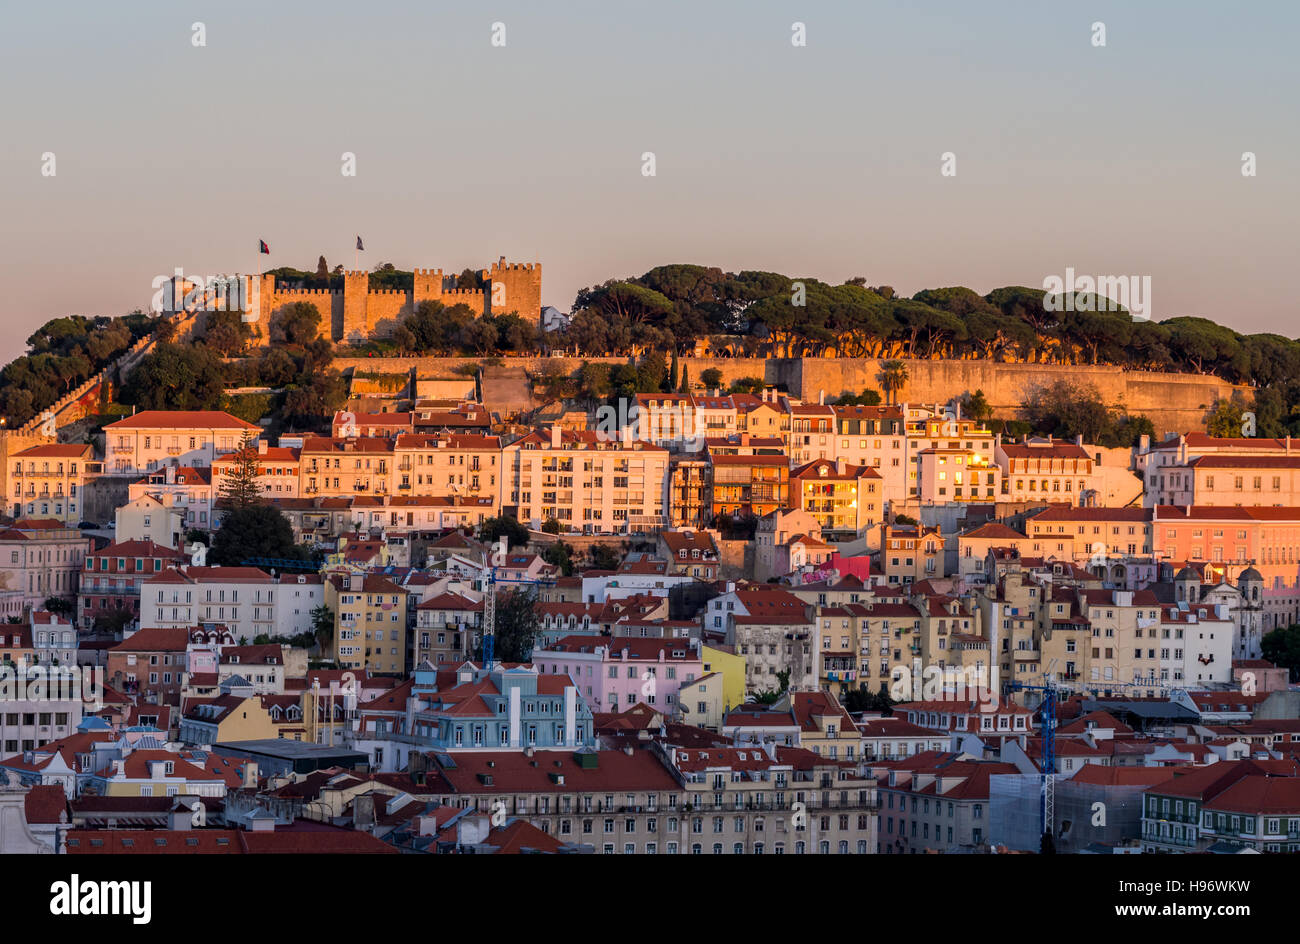 Cityscape of Lisbon, Portugal, with the Sao Jorge Castle seen from Miradouro Sao Pedro de Alcantara at sunset. - Stock Image